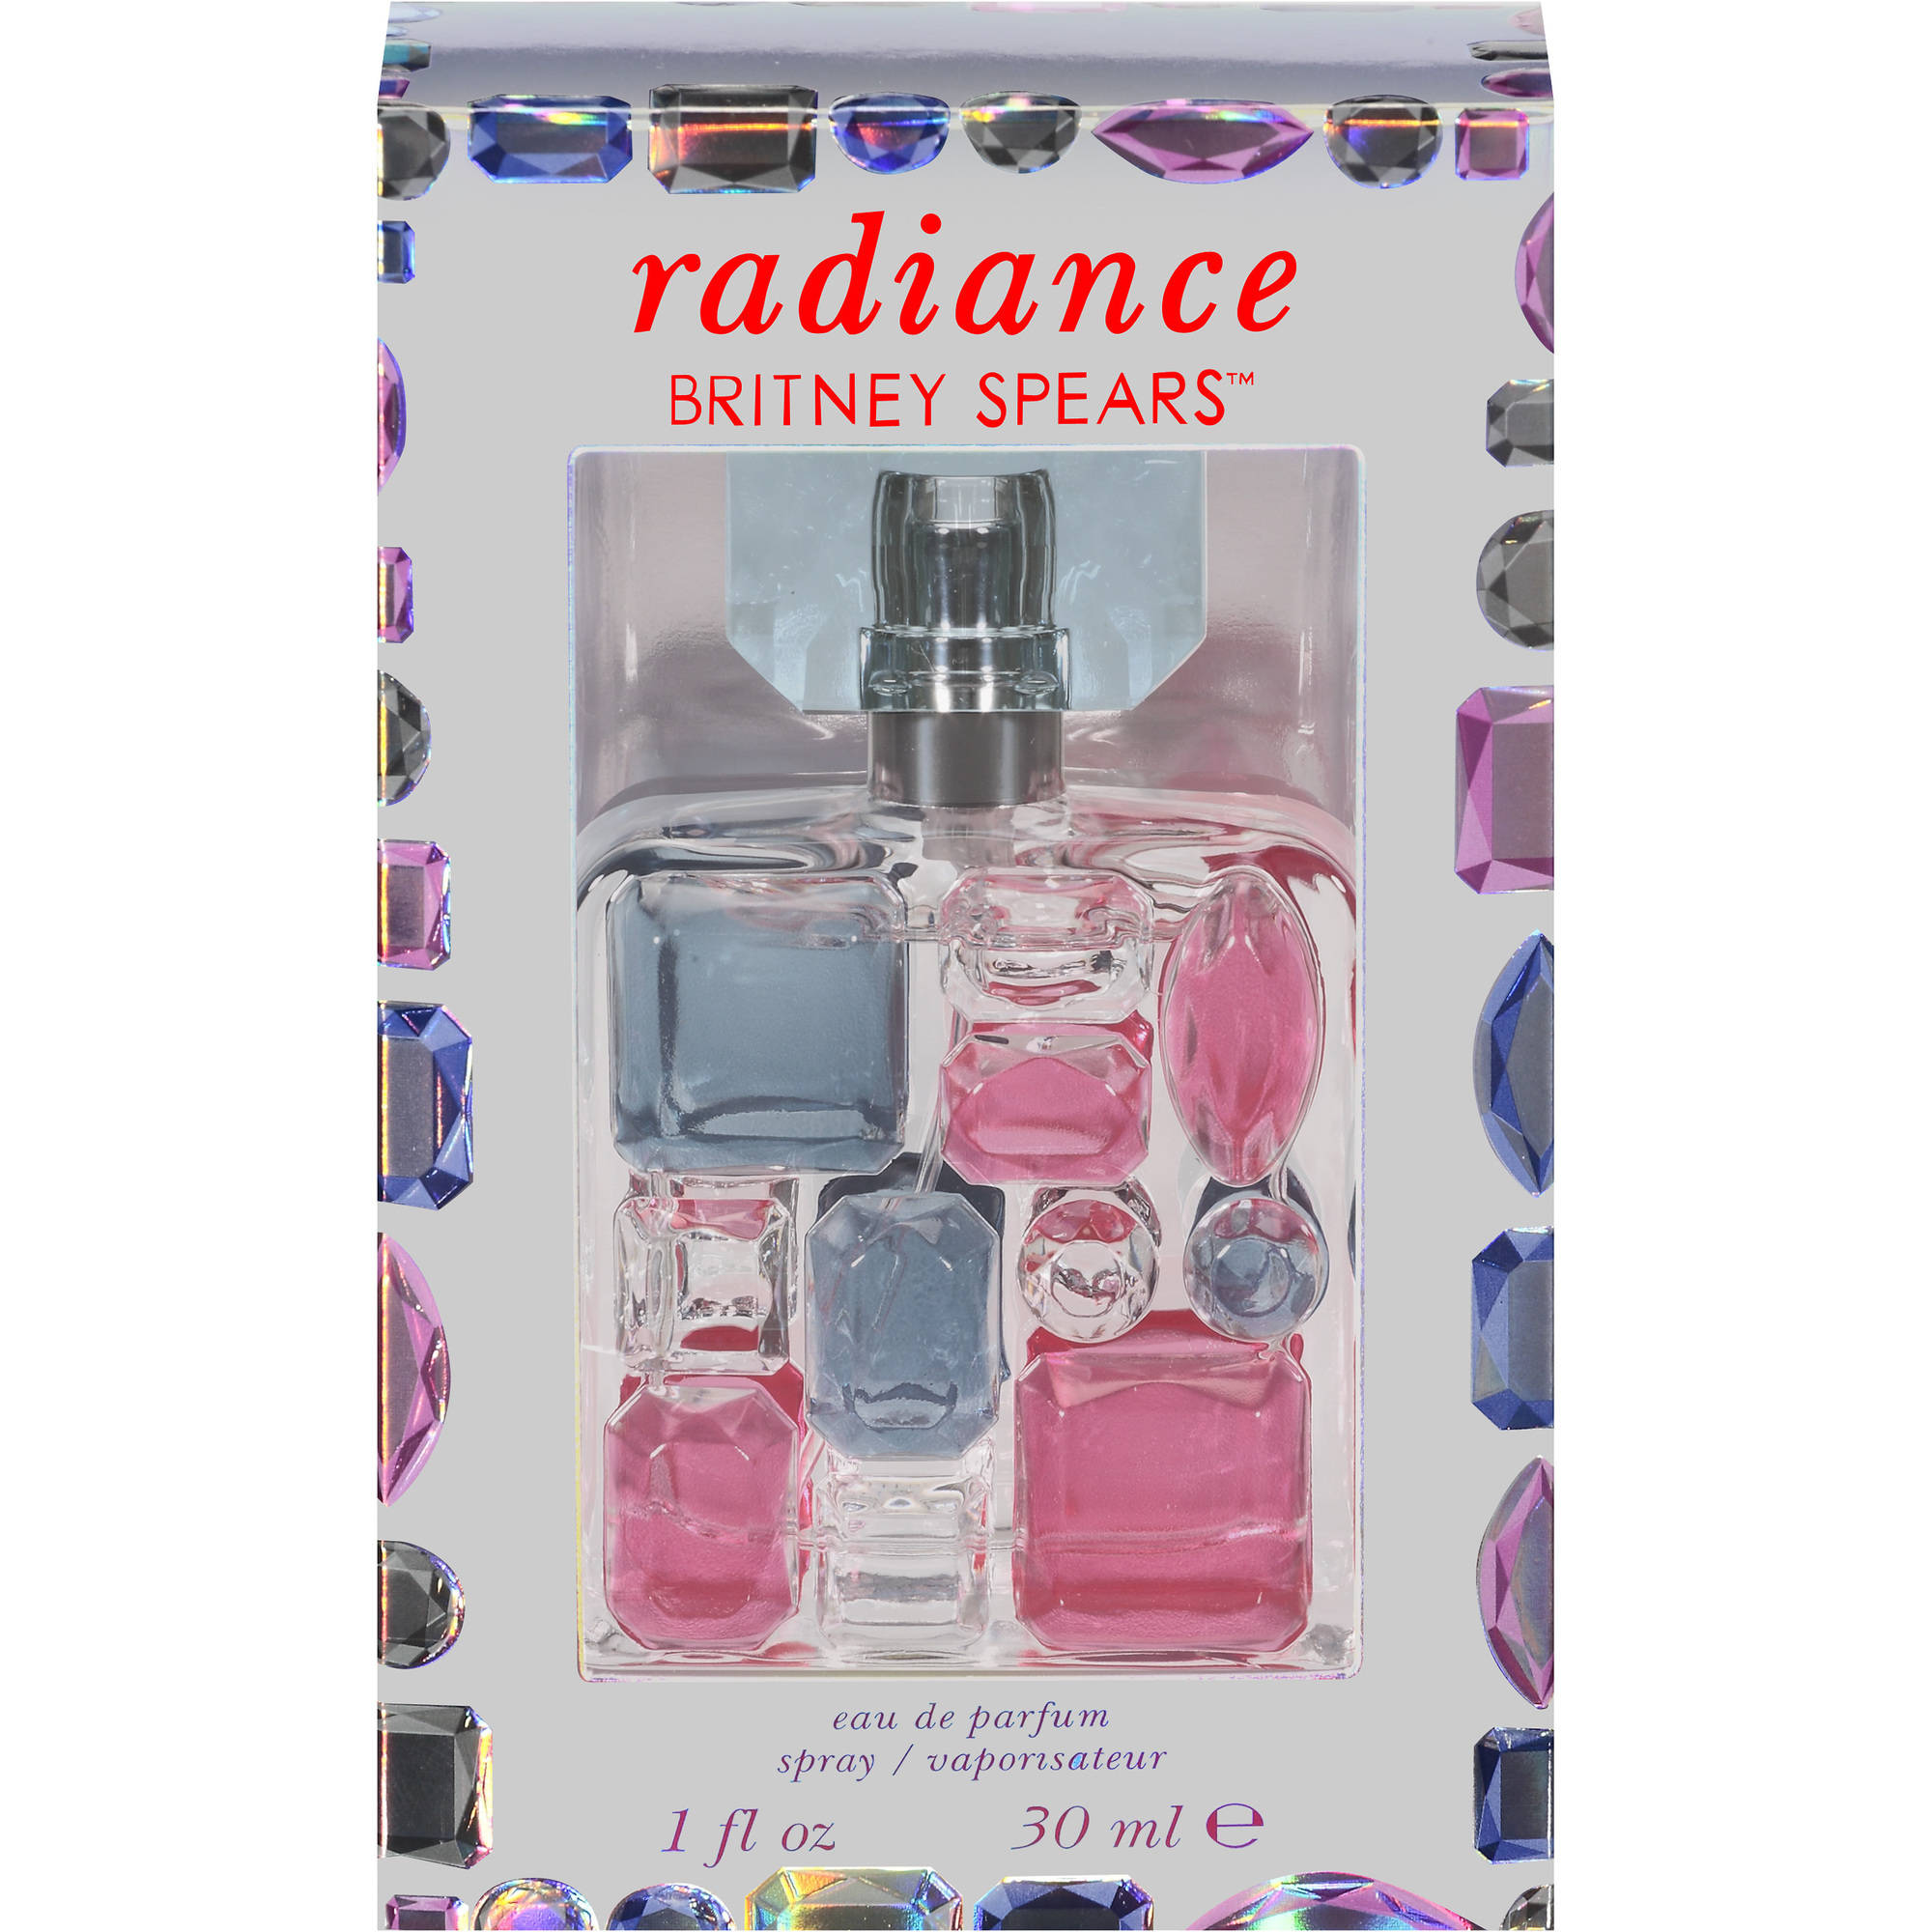 Britney Spears Radiance Eau de Parfum Spray, 1 fl oz